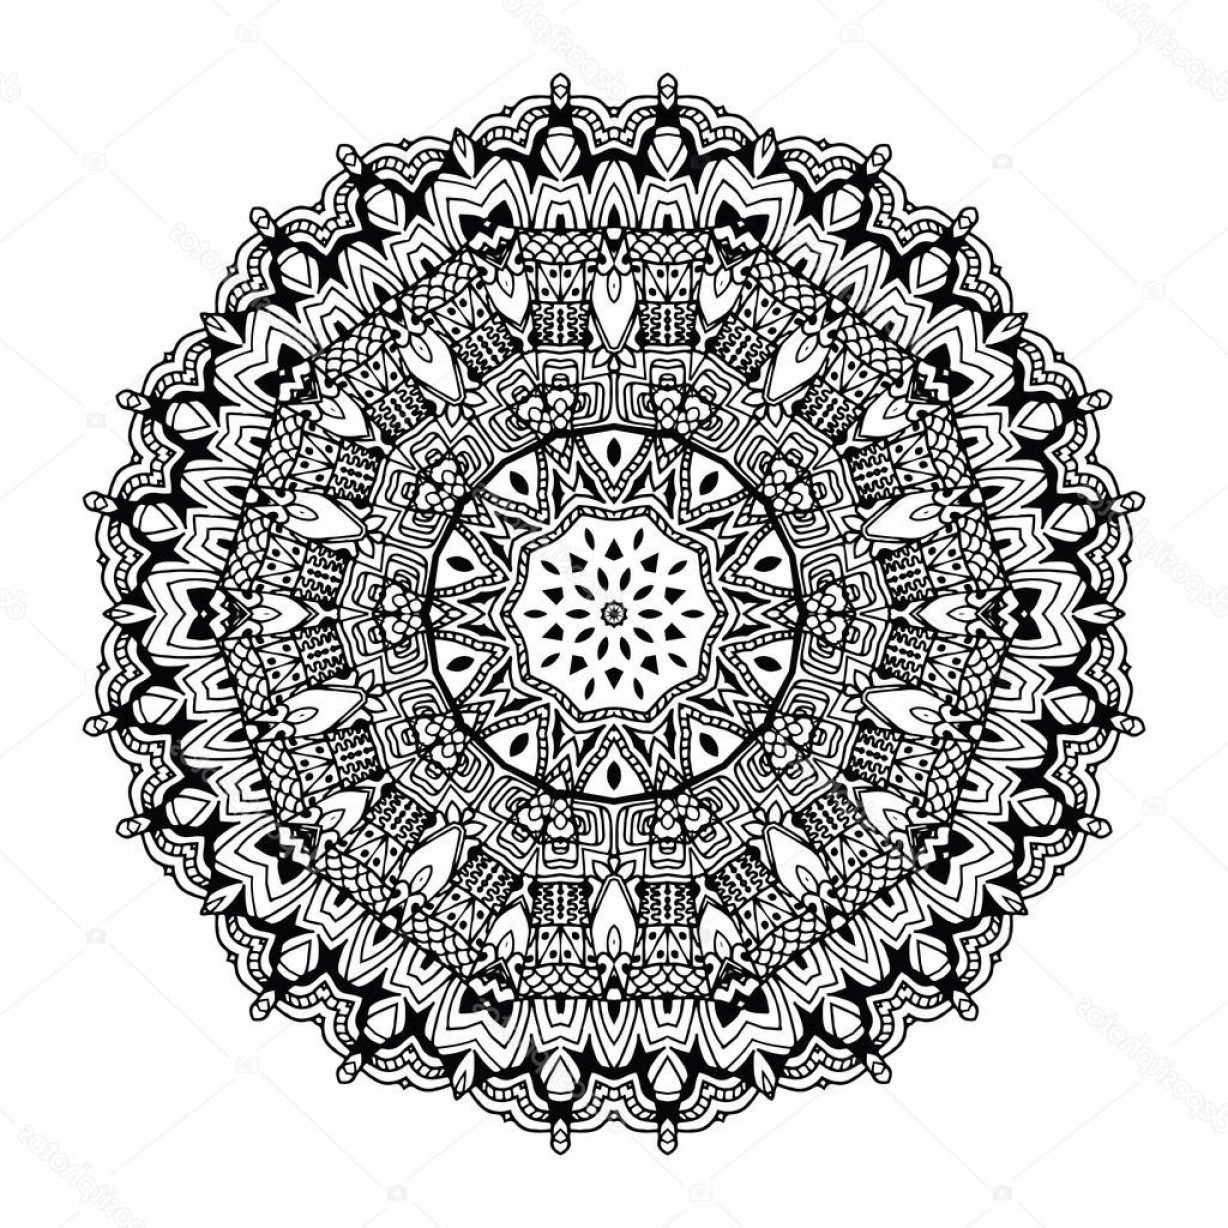 Black And White Circle Vector Graphics: Stock Illustration Abstract Design Black White Element